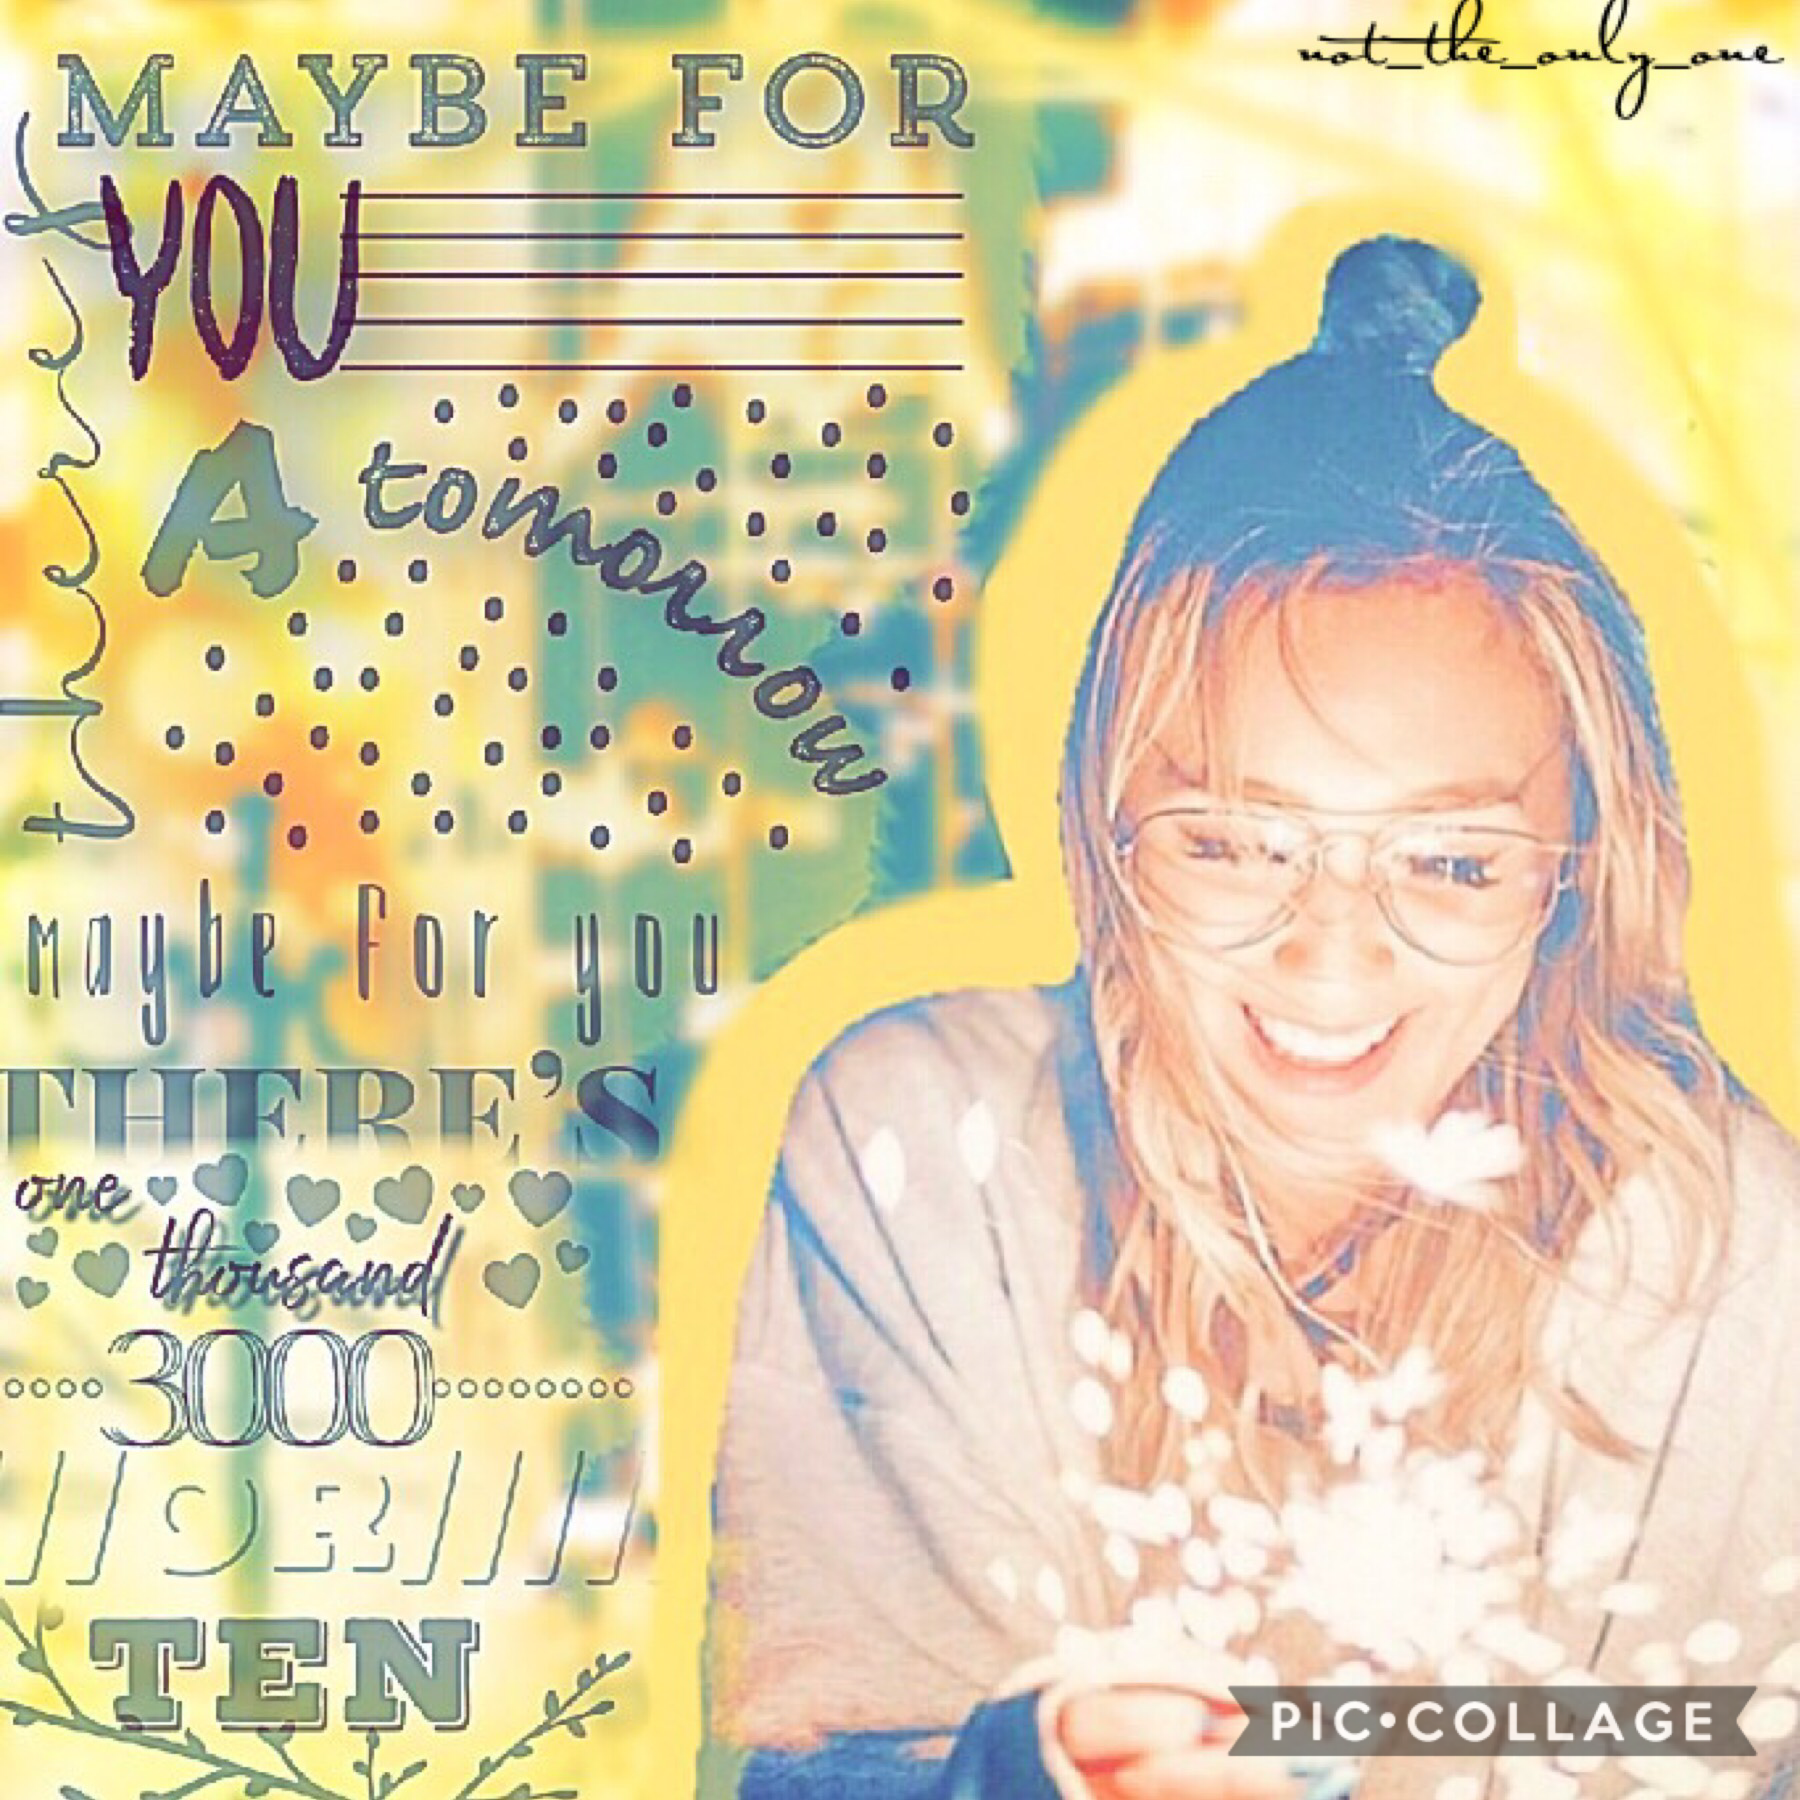 Tap if ur fam Heyyyy!!💕💕💕 sup girlie!!💕💕✌️ entered this into a contest for beautiful-extras! Lemme know what u think!!!💕💕♥️🔥🙏✌️